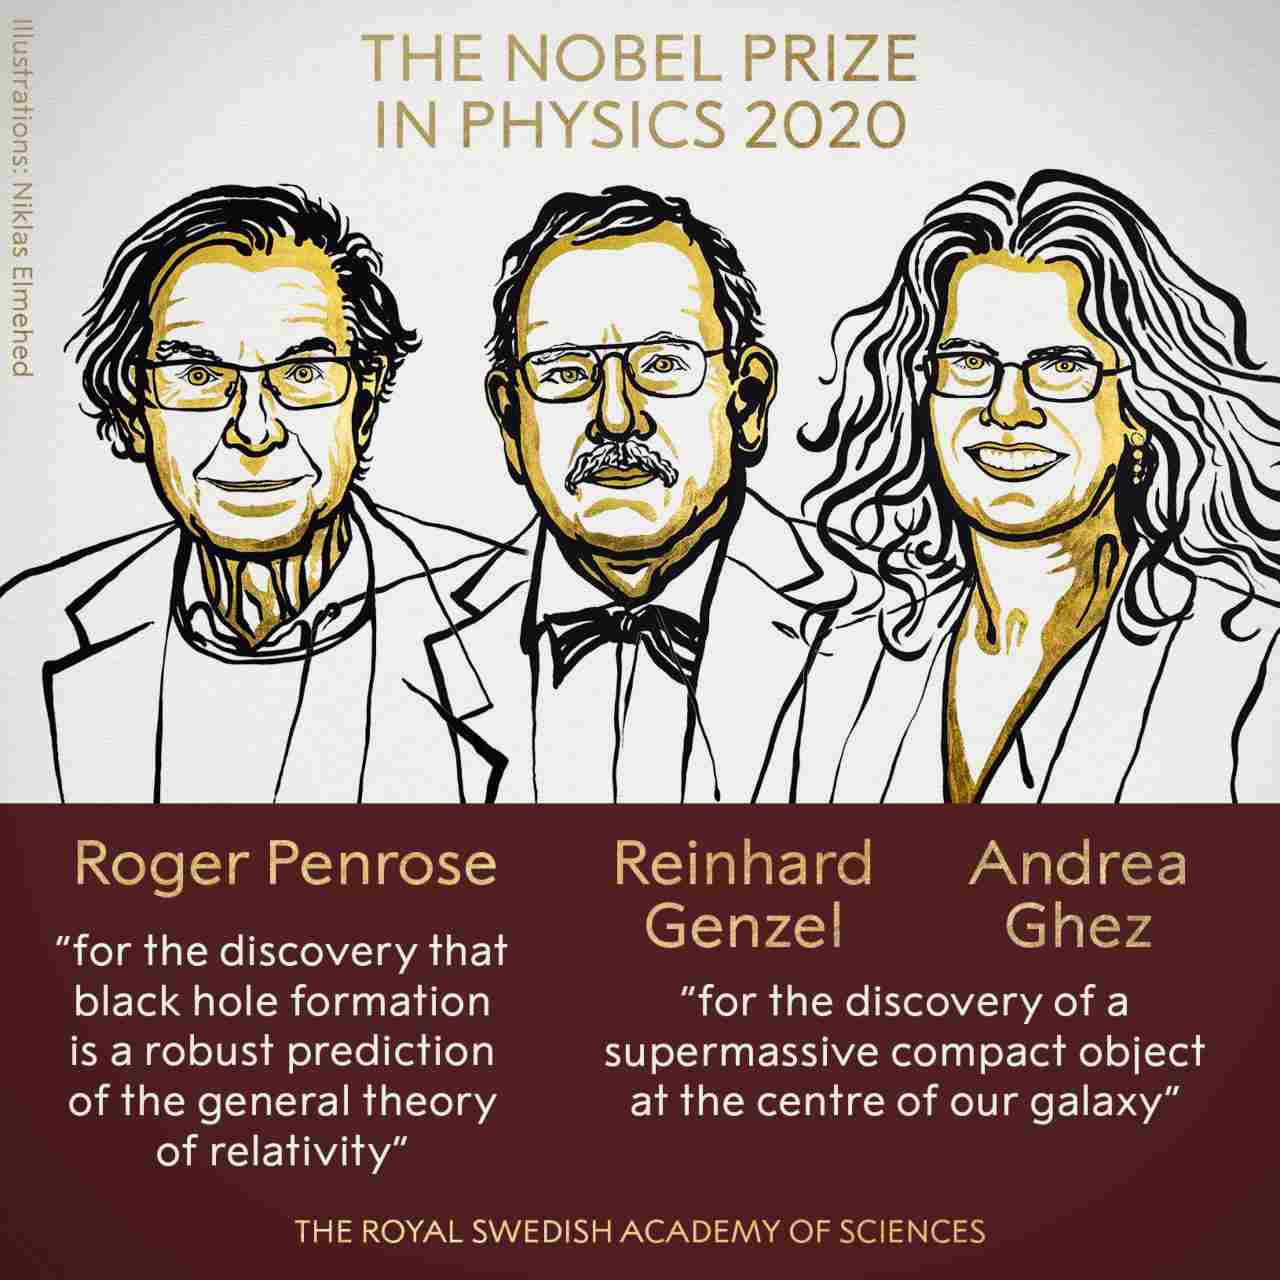 Roger Penrose, Reinhard Genzel and Andrea Ghez were awarded the Nobel Prize in Physics for 2020, for their findings in cosmology. Image Credit: Niklas Elmehed/Twitter/Nobel Prize